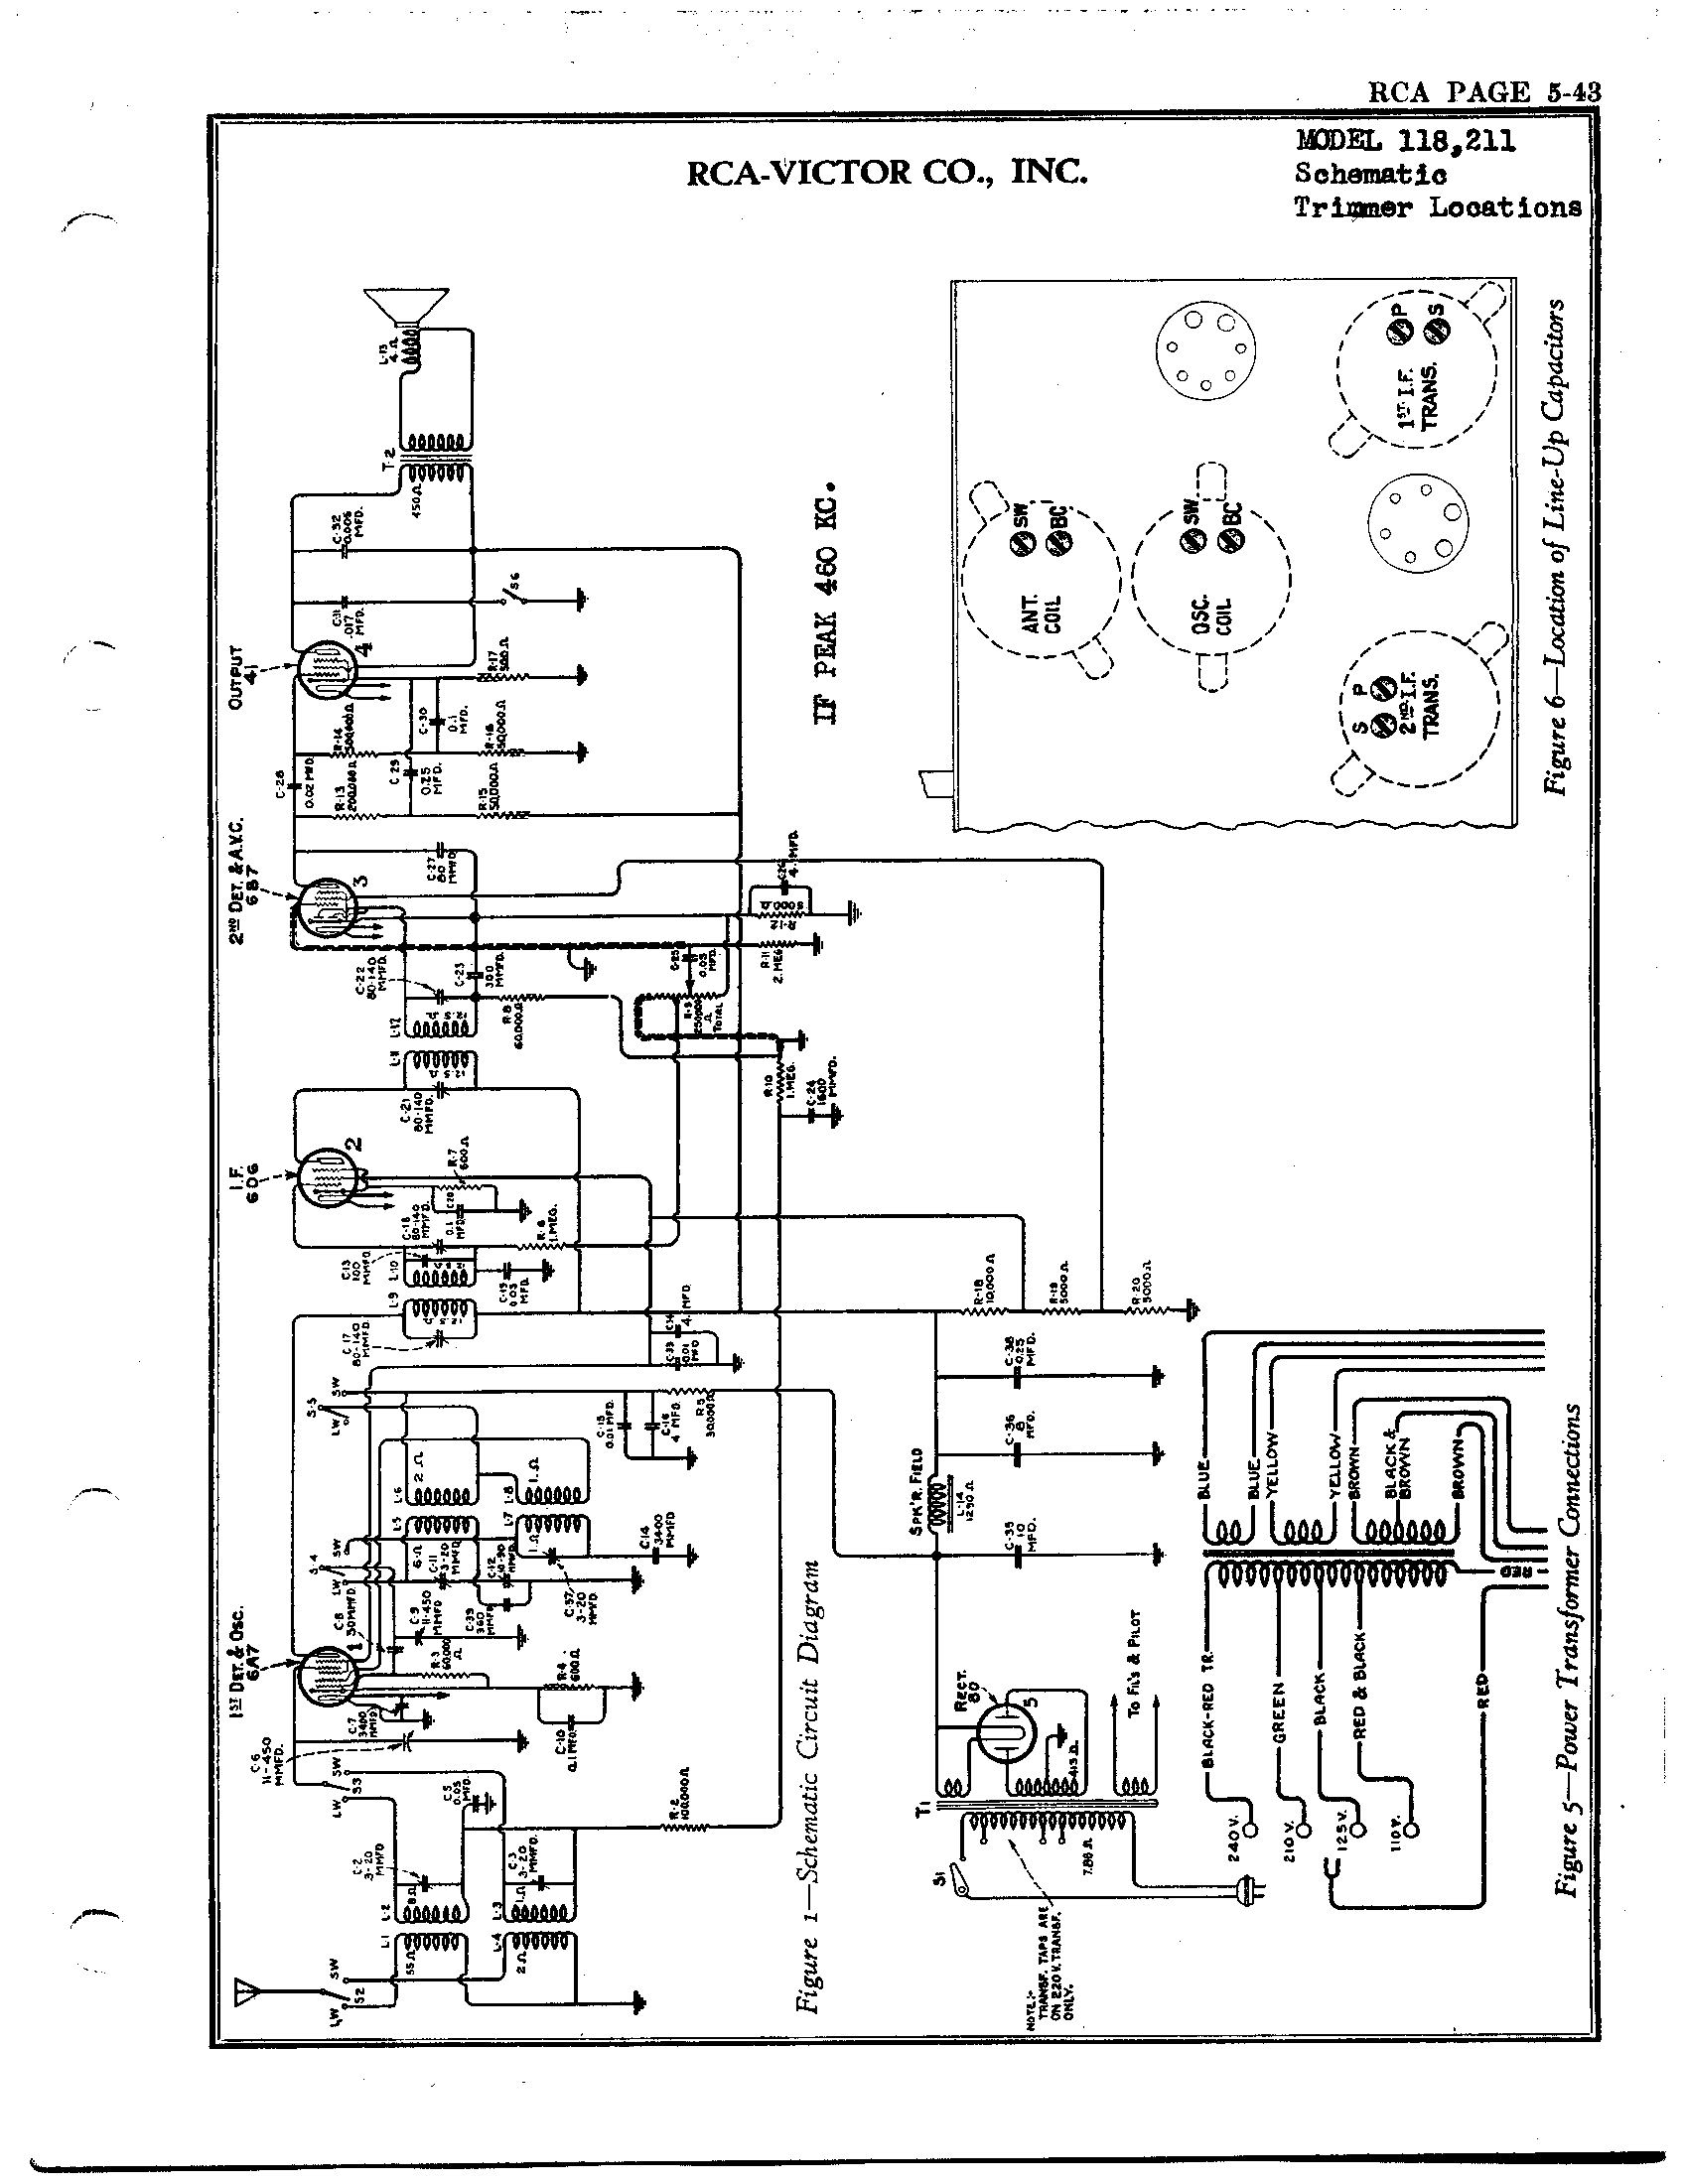 Speaker Volume Control Schematic